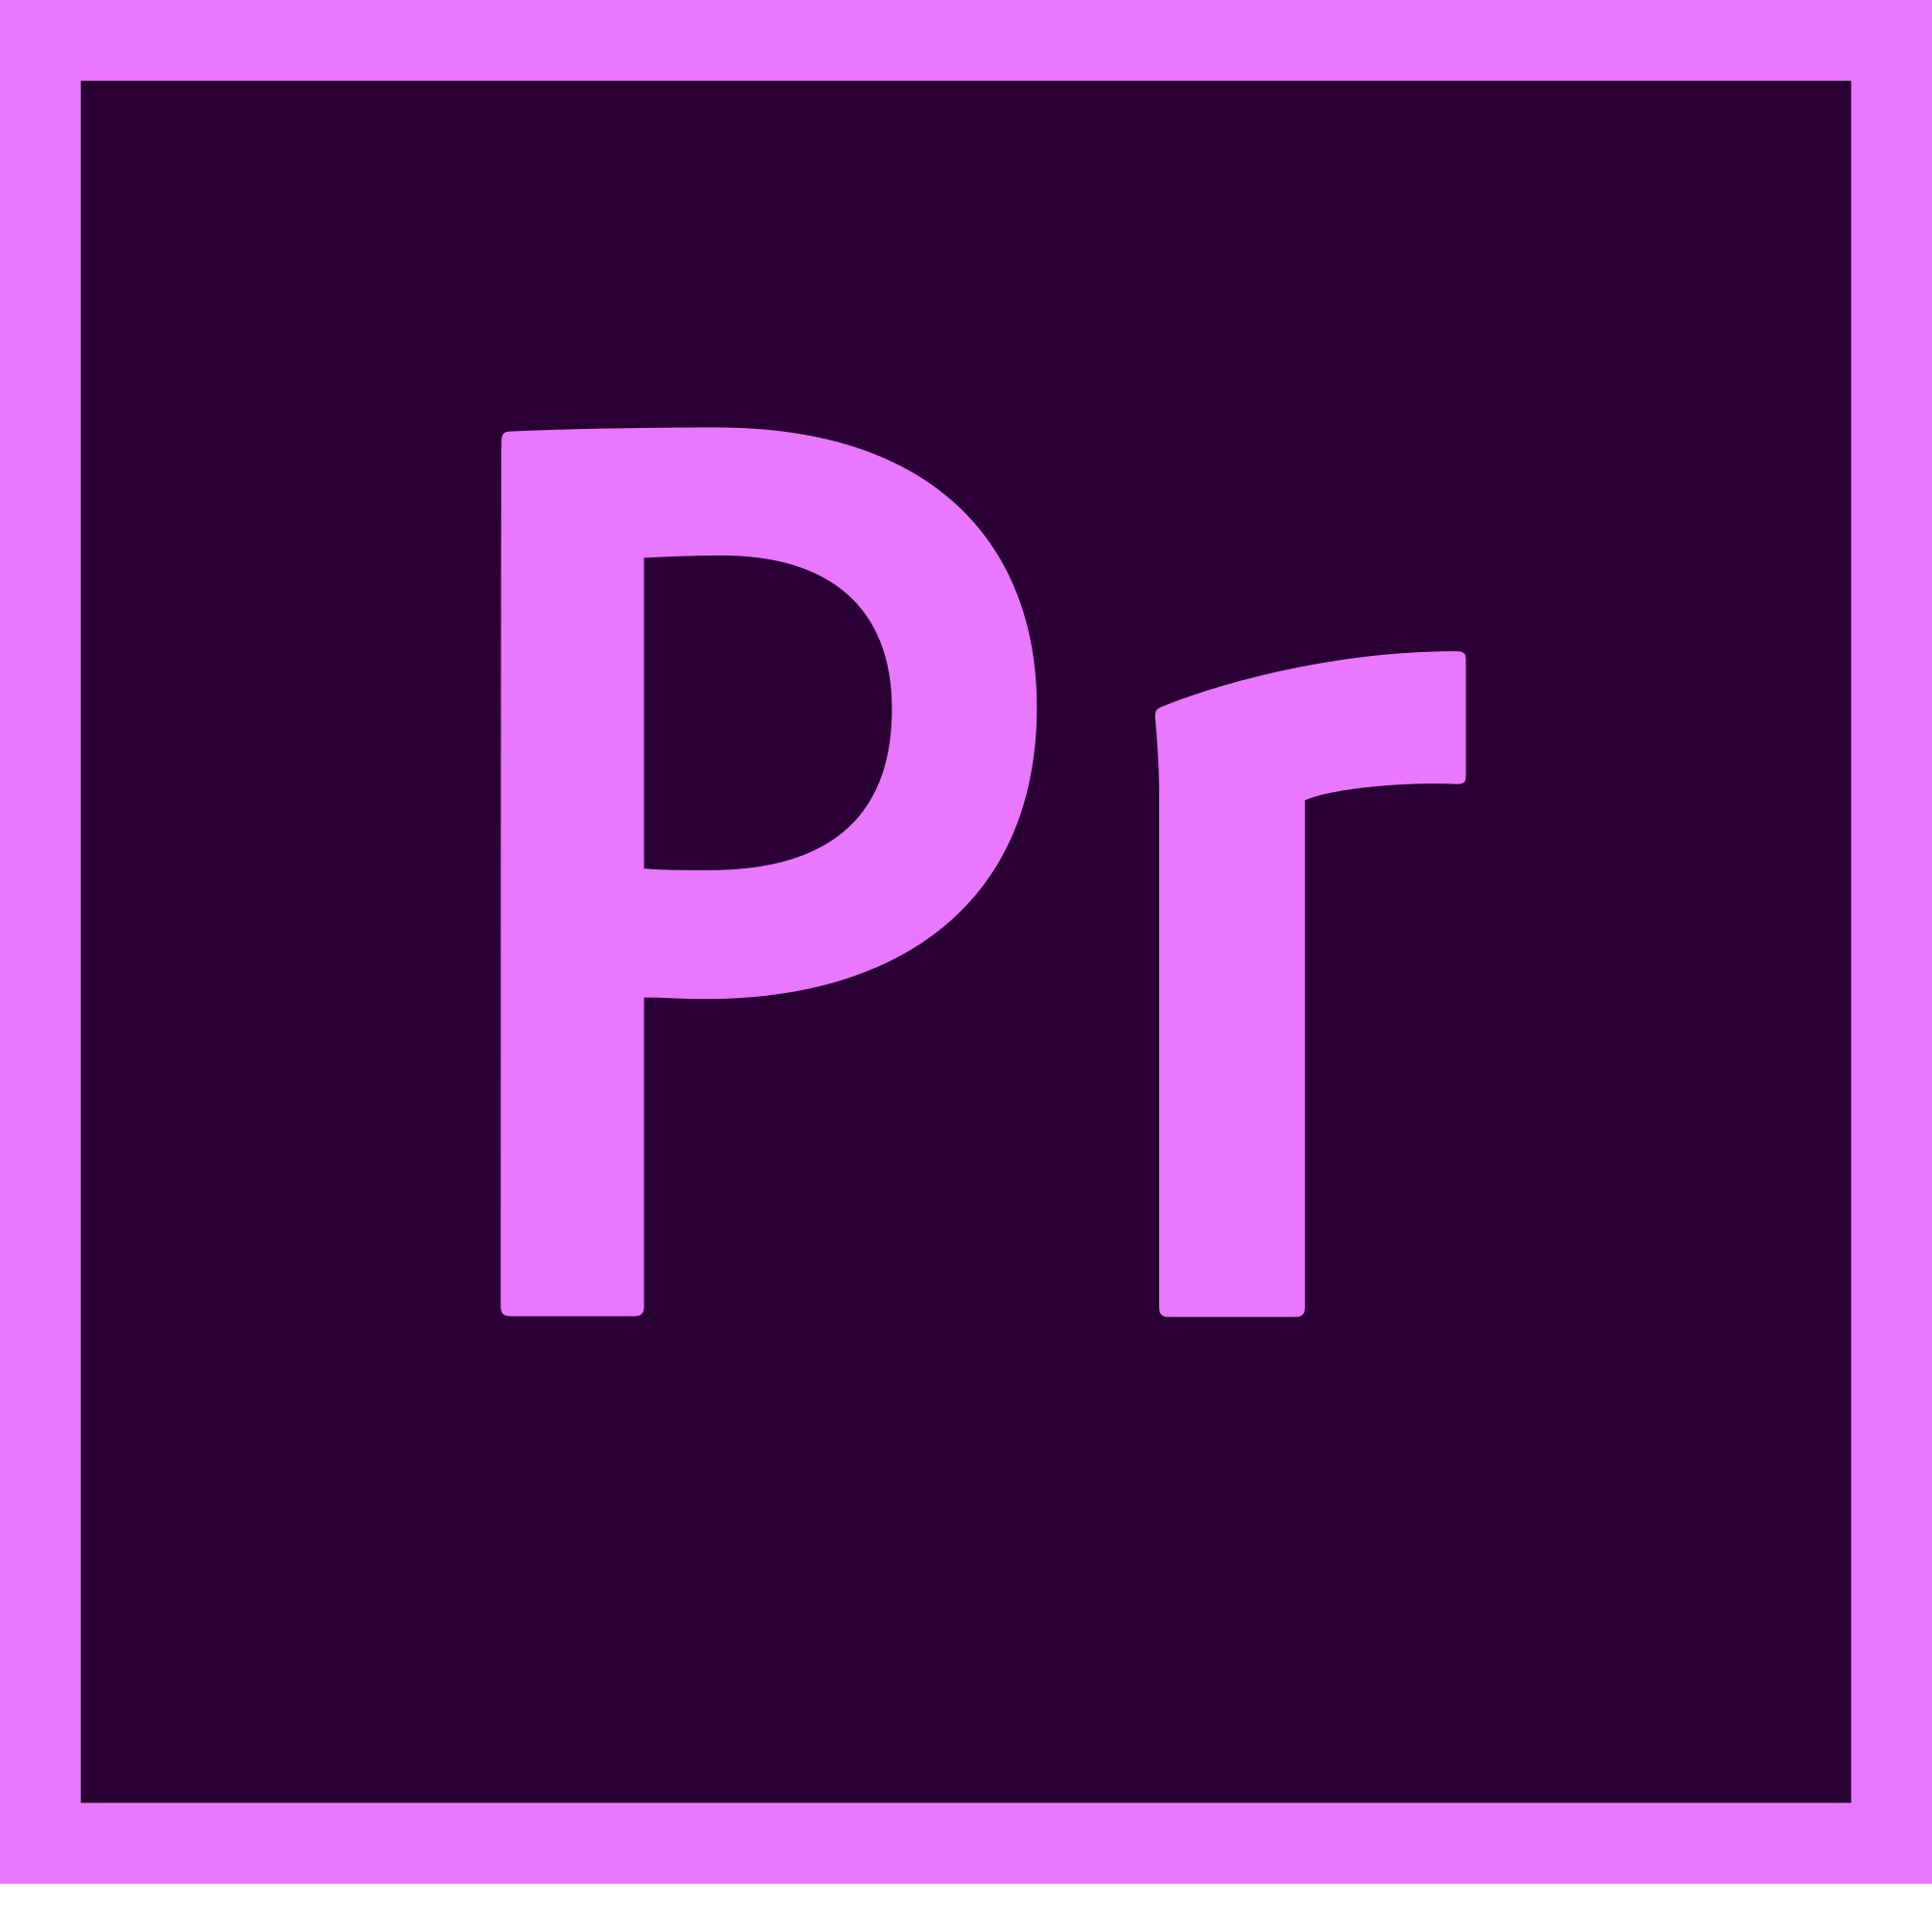 Will Create, Edit, convert quality of videos with A...